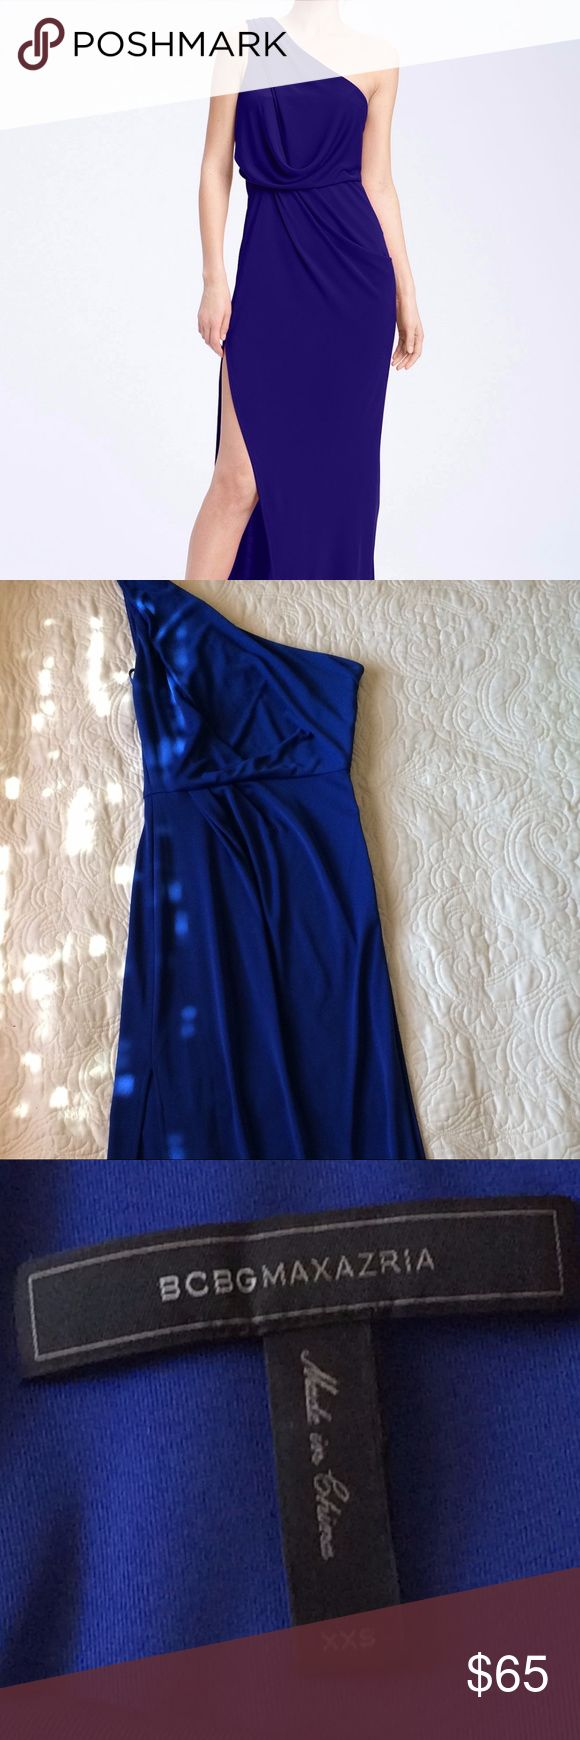 "BCBG One Shoulder Formal Dress Only worn once!  Beautiful royal blue one shoulder formal dress.  Made of jersey material and drapes beautifully.  In great condition. Great for proms, homecoming, formal weddings, or balls. Size is XXS  but fits bust 34"" waist 27"" hips 36"" BCBGMaxAzria Dresses One Shoulder"